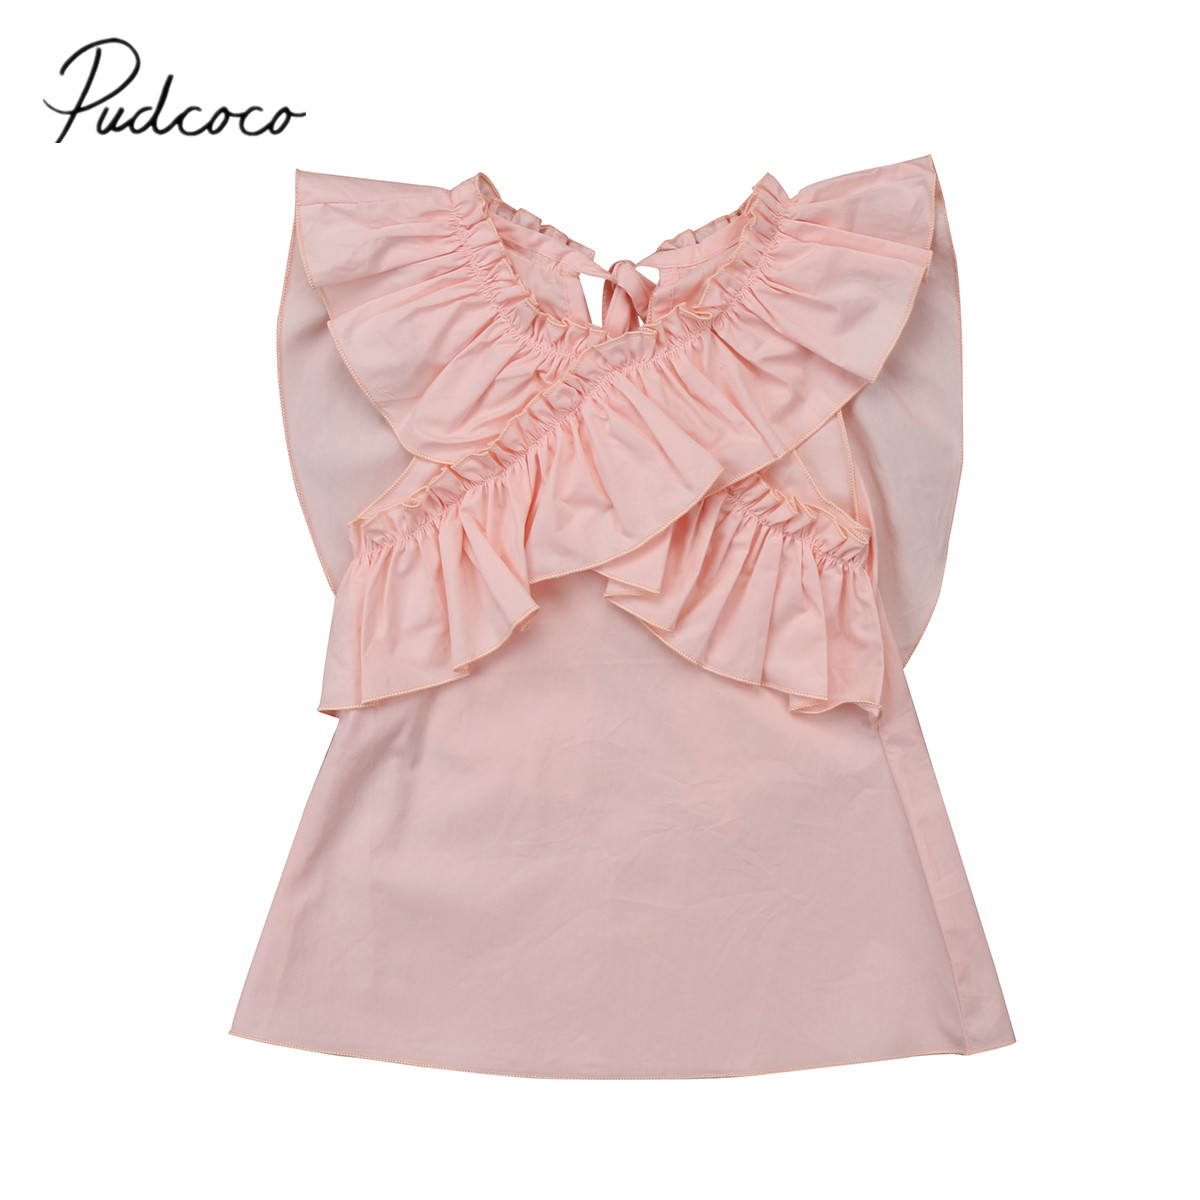 2018 Brand New Sweet Toddler Infant Child Kids Baby Girl Ruffle Princess Dress Casual Clothes Outfits Little Wing Sundress 3M-4T spring new princess kids toddler girl denim dress kid little girl suspender dress baby clothes mermaid dress free drop shipping